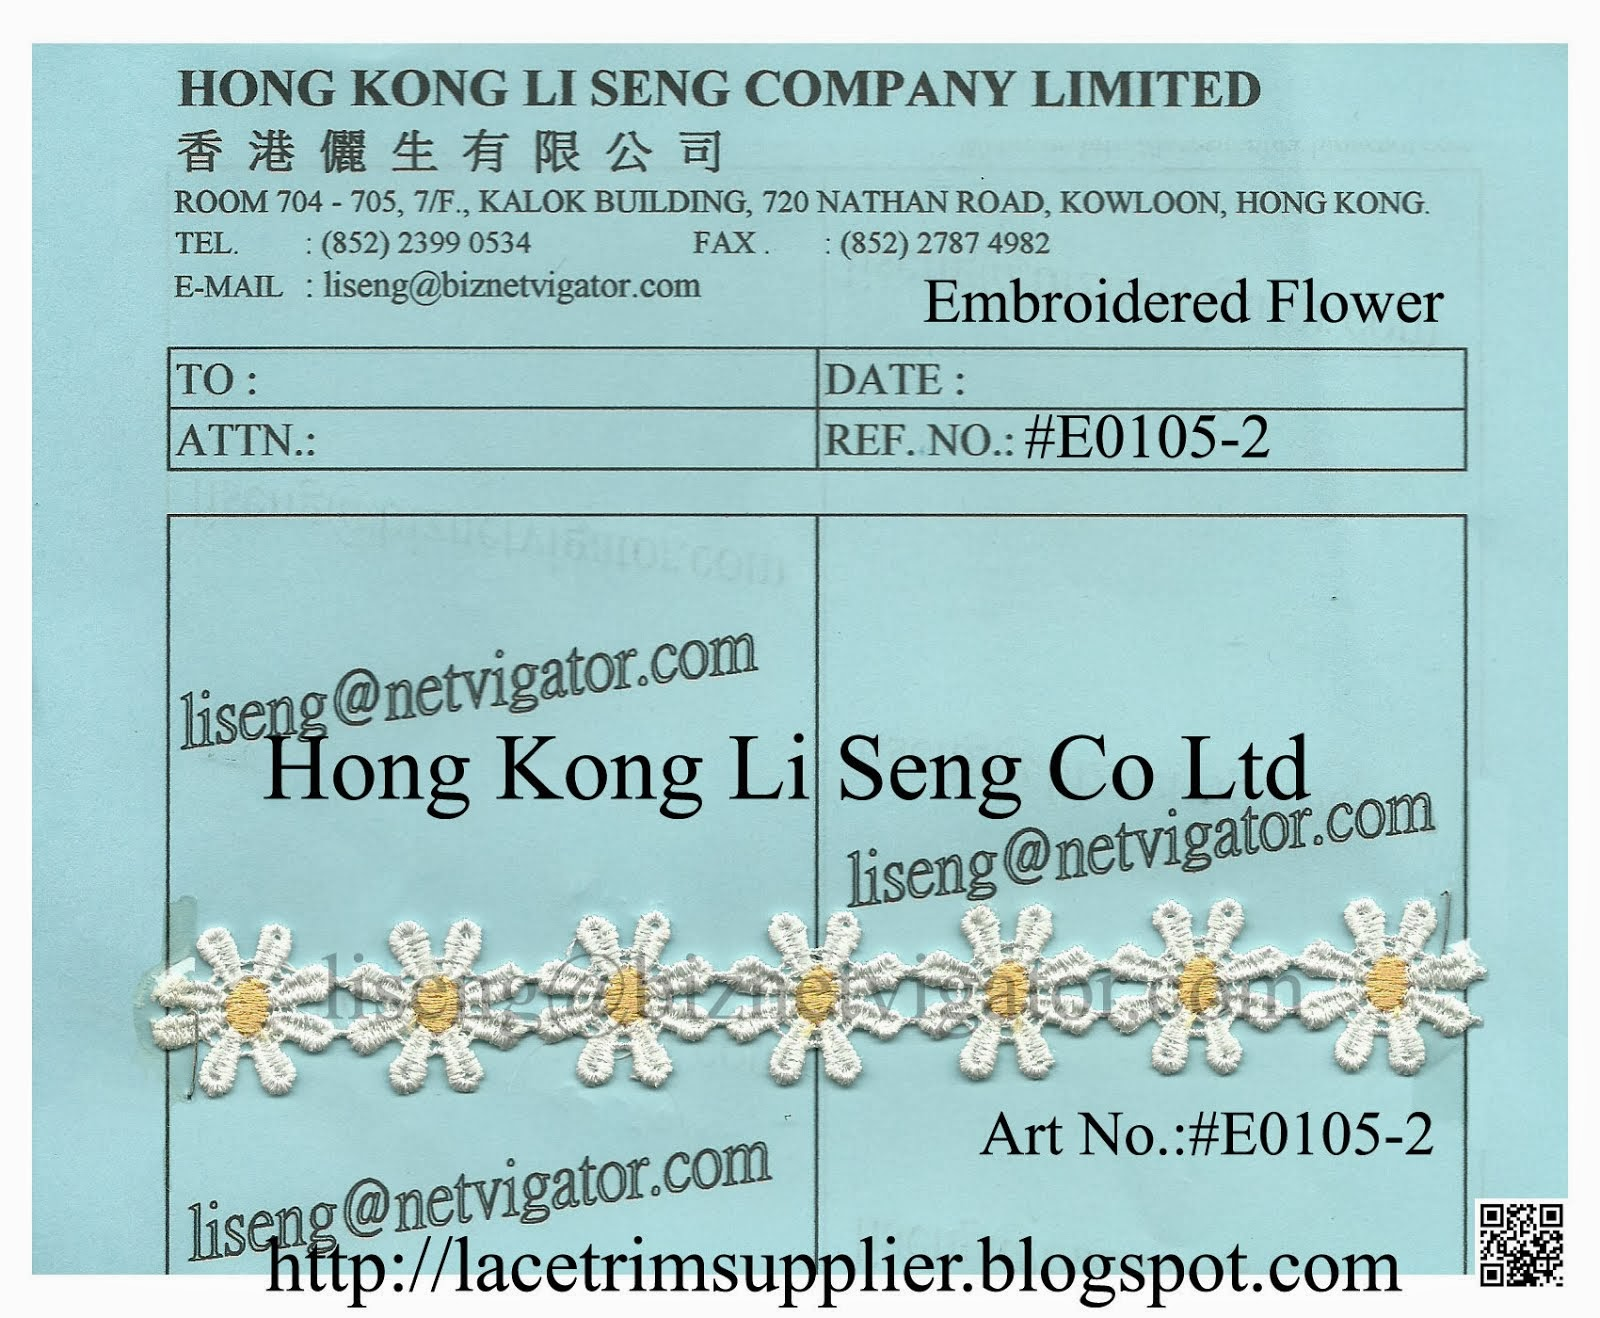 Embroidered Lace Flower Manufacturer - Hong Kong Li Seng Co Ltd